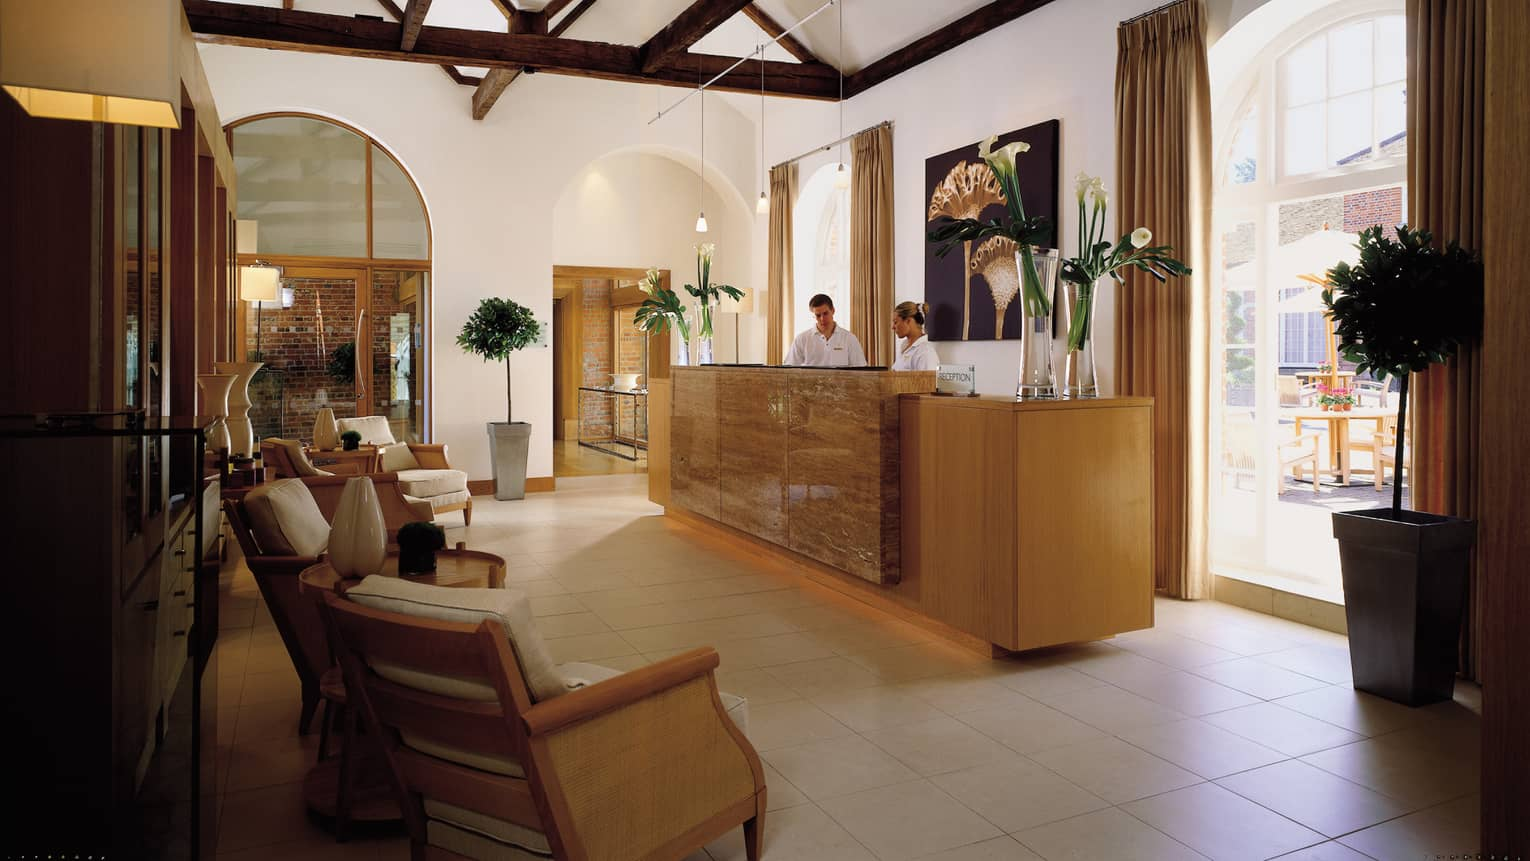 Staff at Spa reception desk under wood beam ceiling, tall bright windows